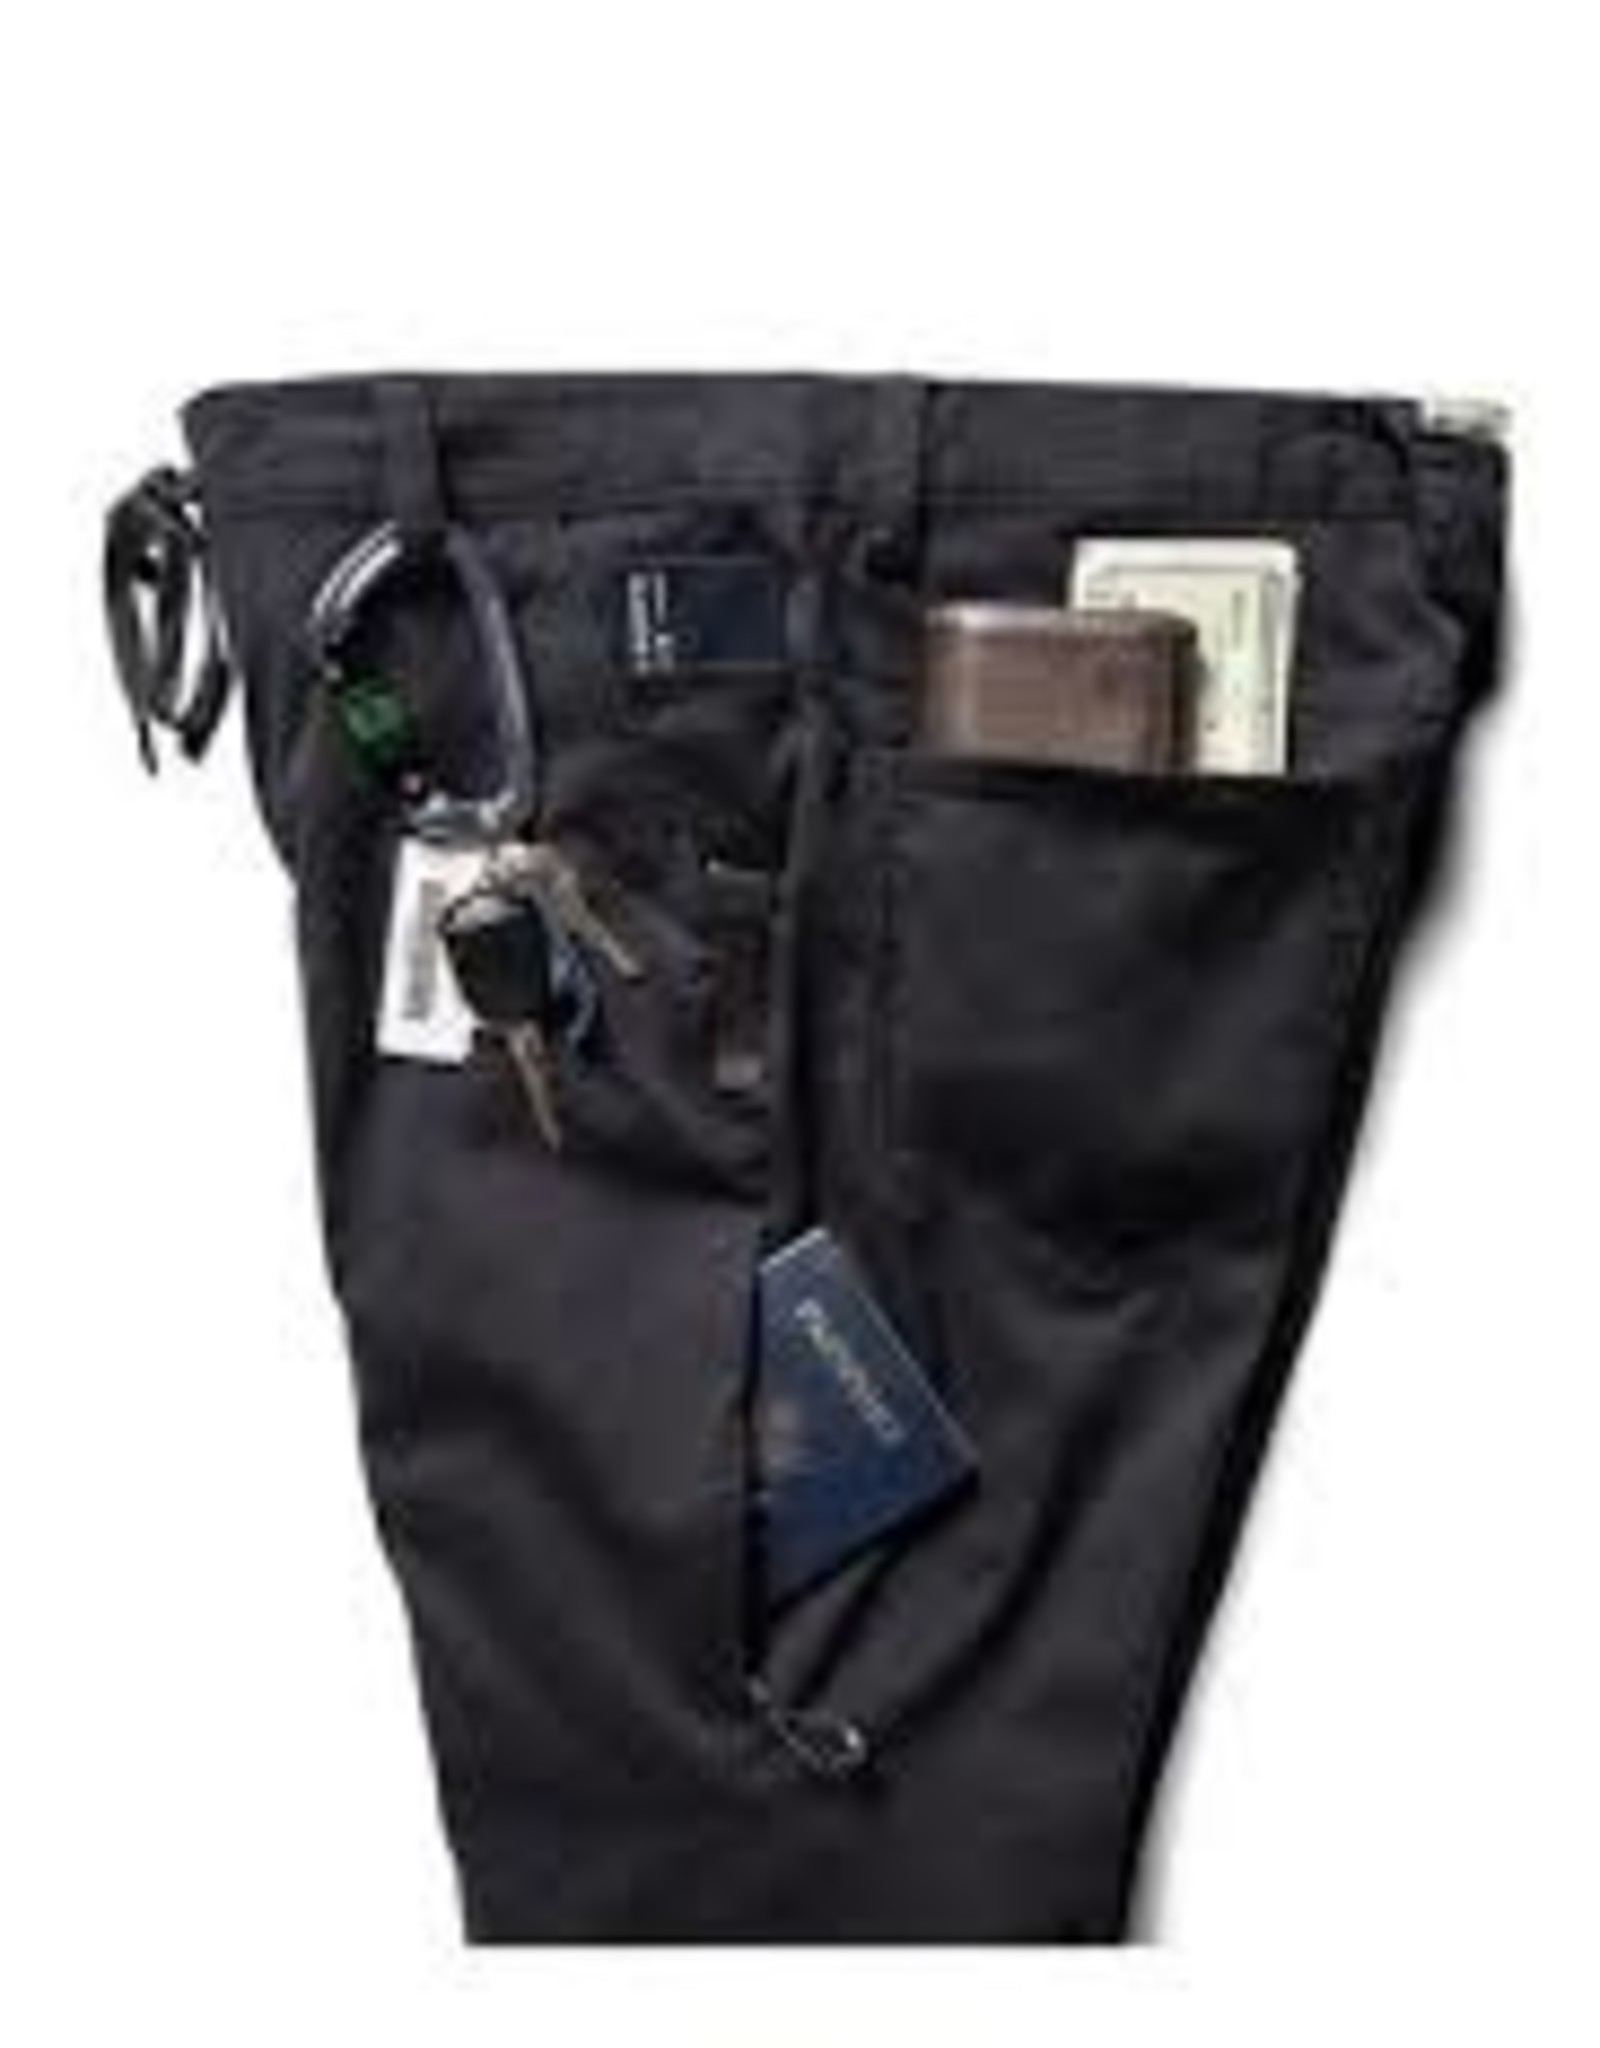 686 686 EVERYWHERE PANT - SLIM FIT CHARCOAL